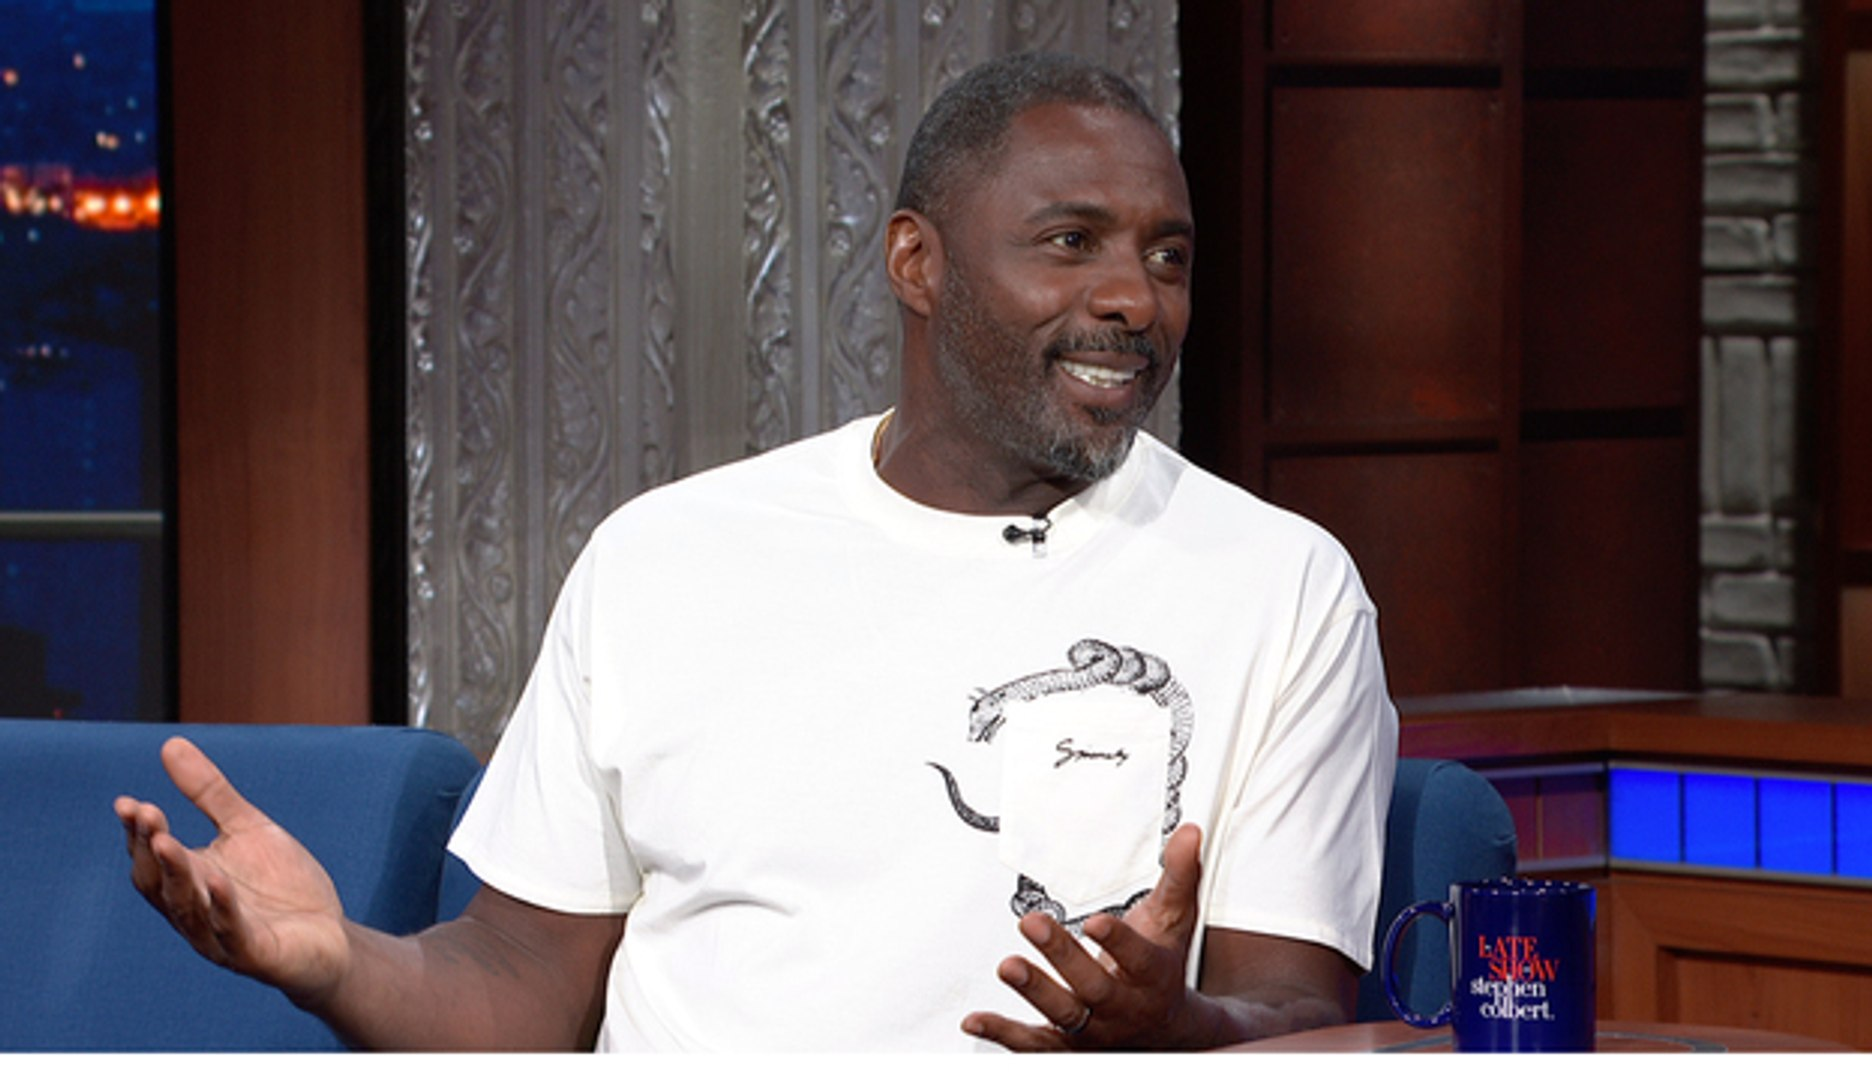 Idris Elba's 'Hobbs & Shaw' Co-Stars Teased Him For Doing 'Cats'